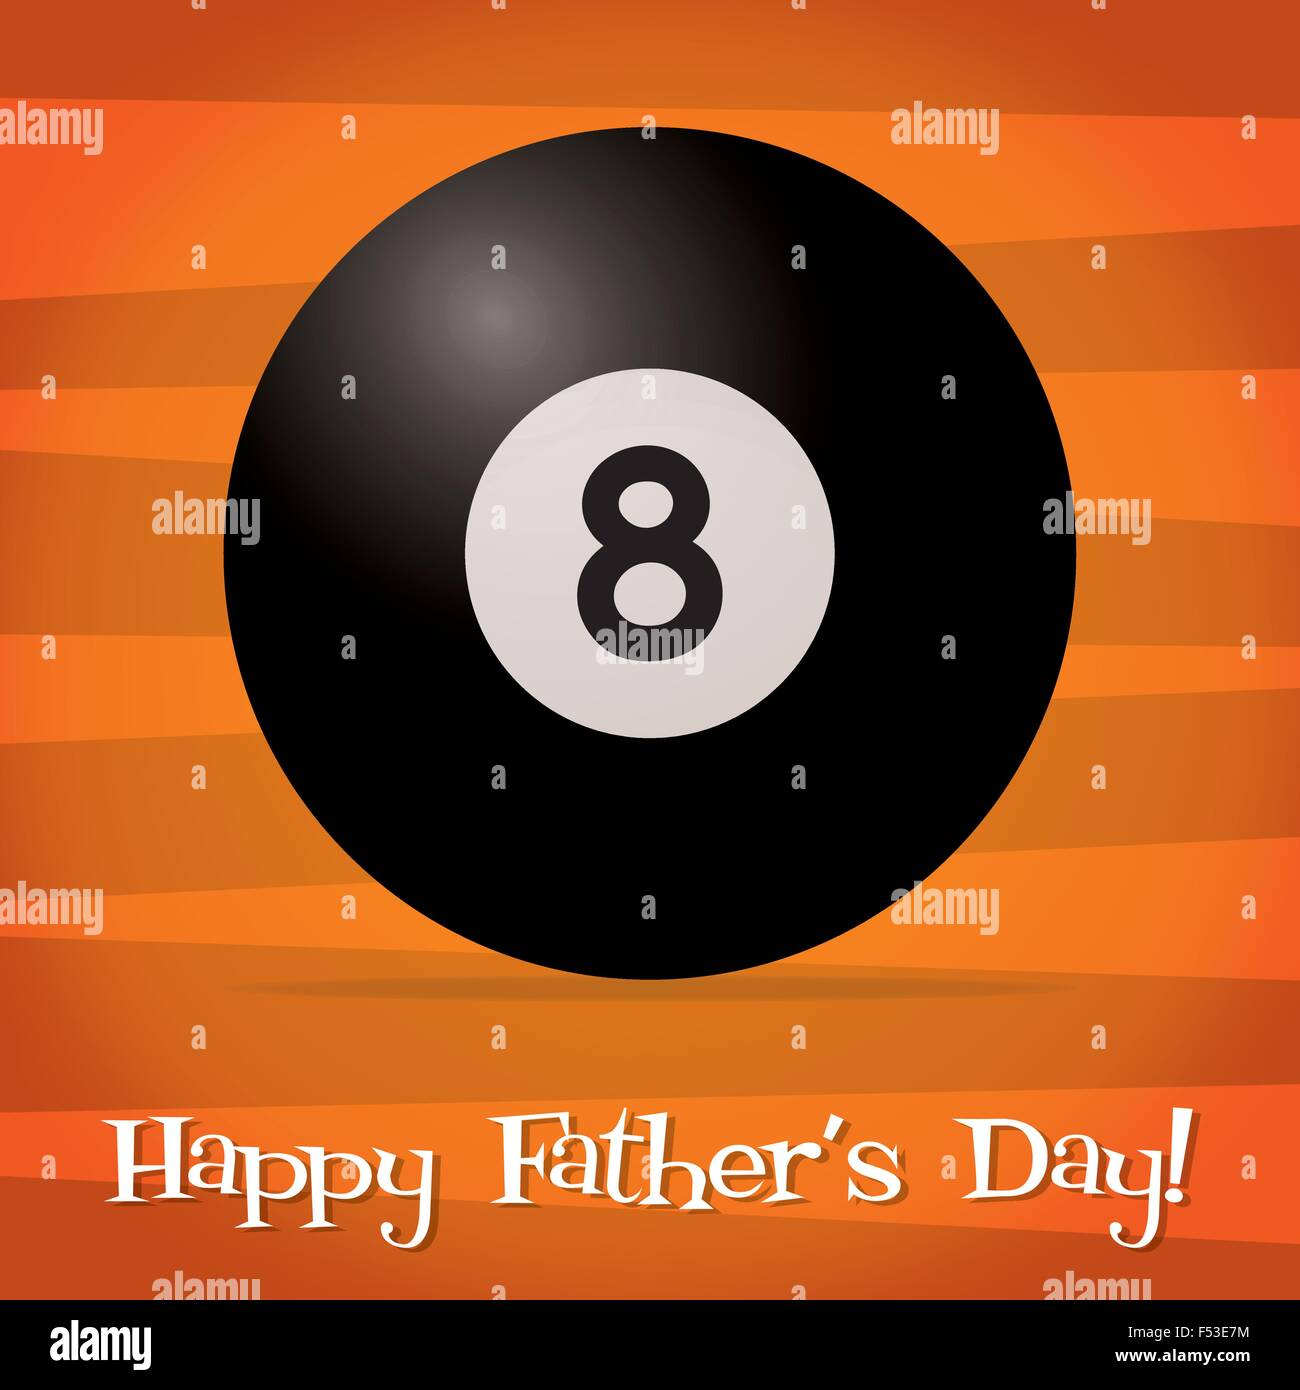 Snooker Father's Day card in vector format. - Stock Image